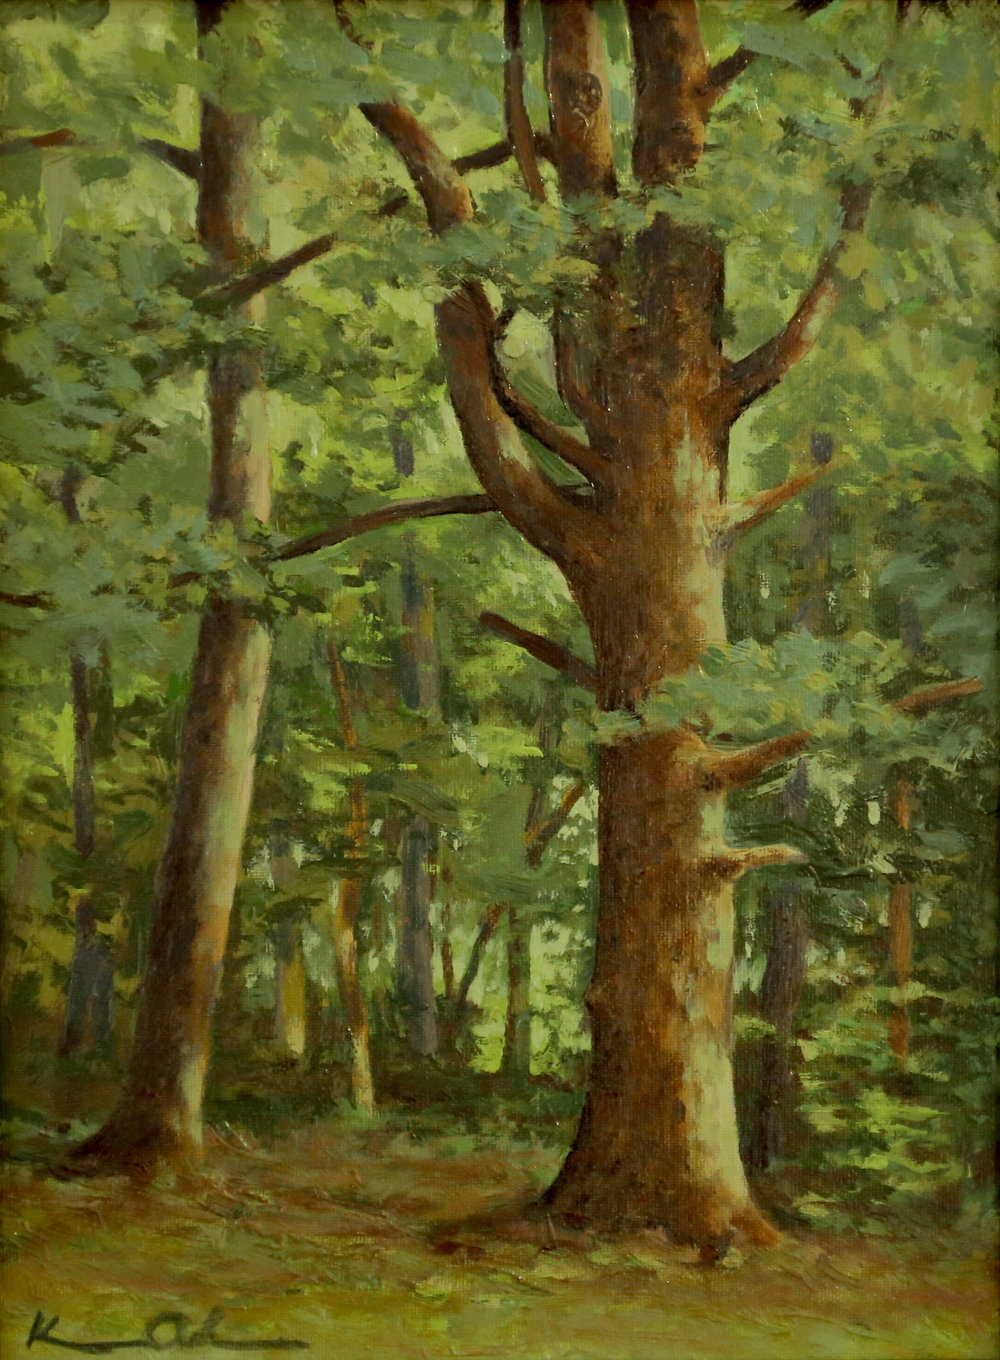 Among The Pine 9 X 12 oil on panel